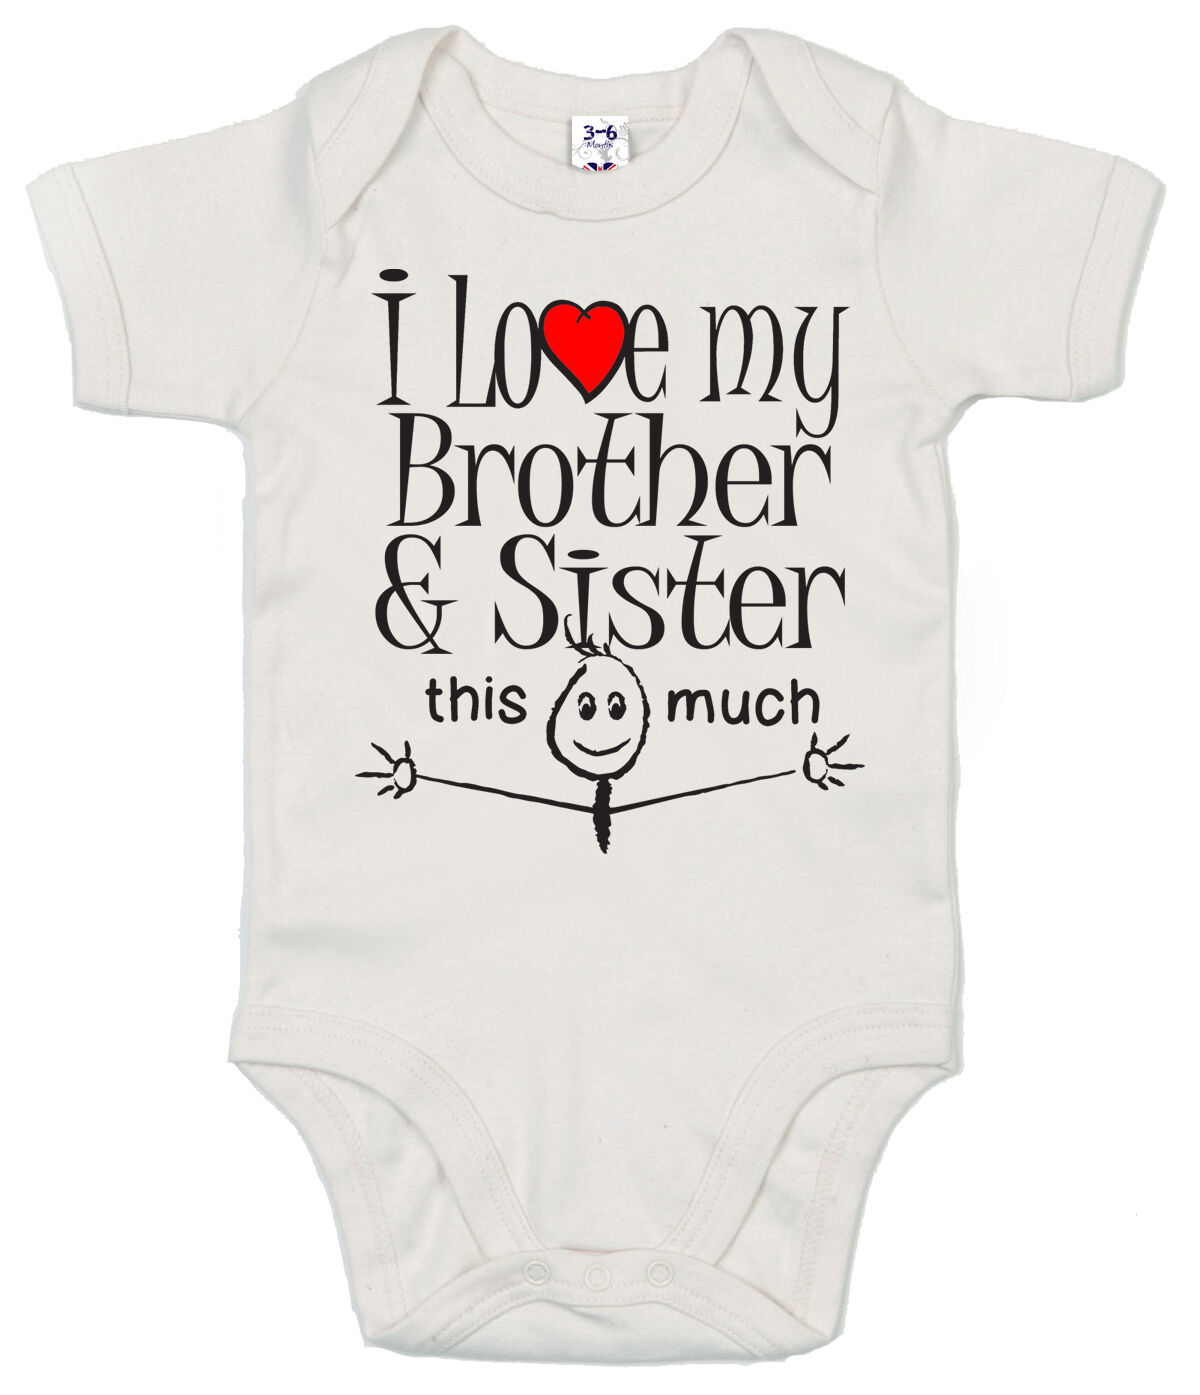 """Funny Baby Bodysuit /""""I Love My Brother This Much/"""" Trimmed Babygrow Clothes"""